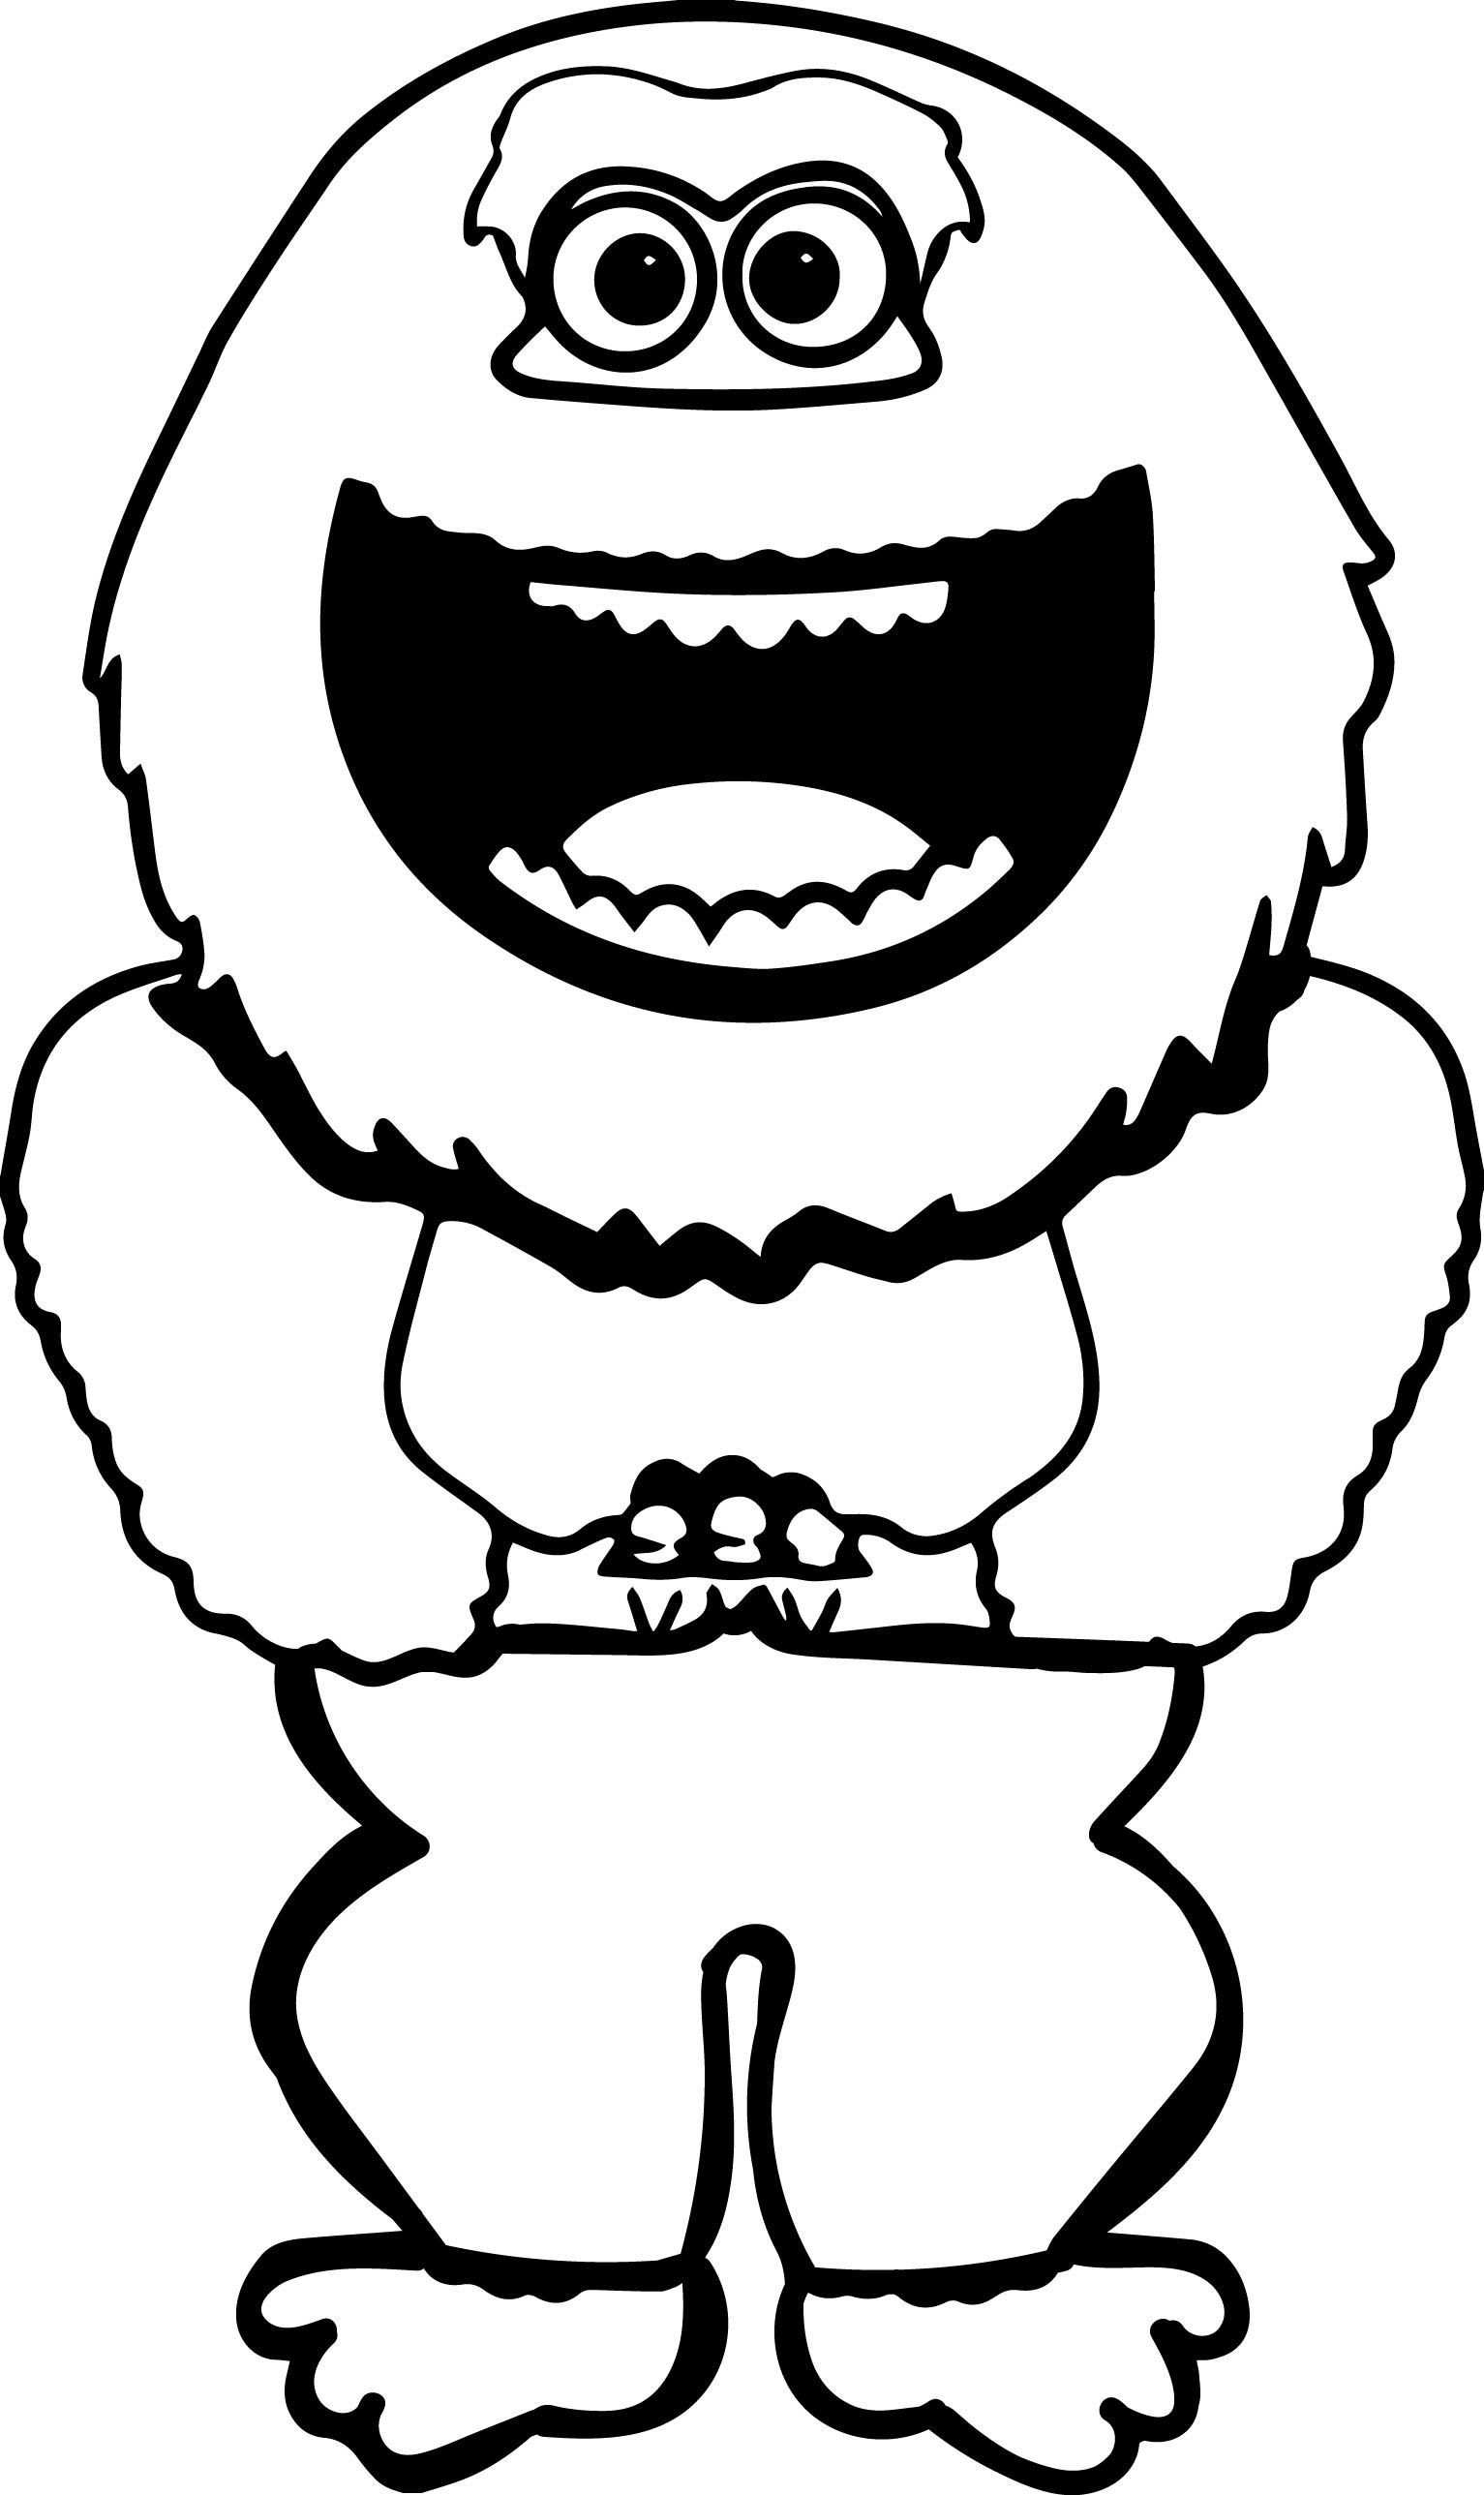 Nice Smiling Abominable Snowman Coloring Page Snowman Coloring Pages Coloring Pages Printa In 2021 Snowman Coloring Pages Monster Coloring Pages Rudolph Coloring Pages